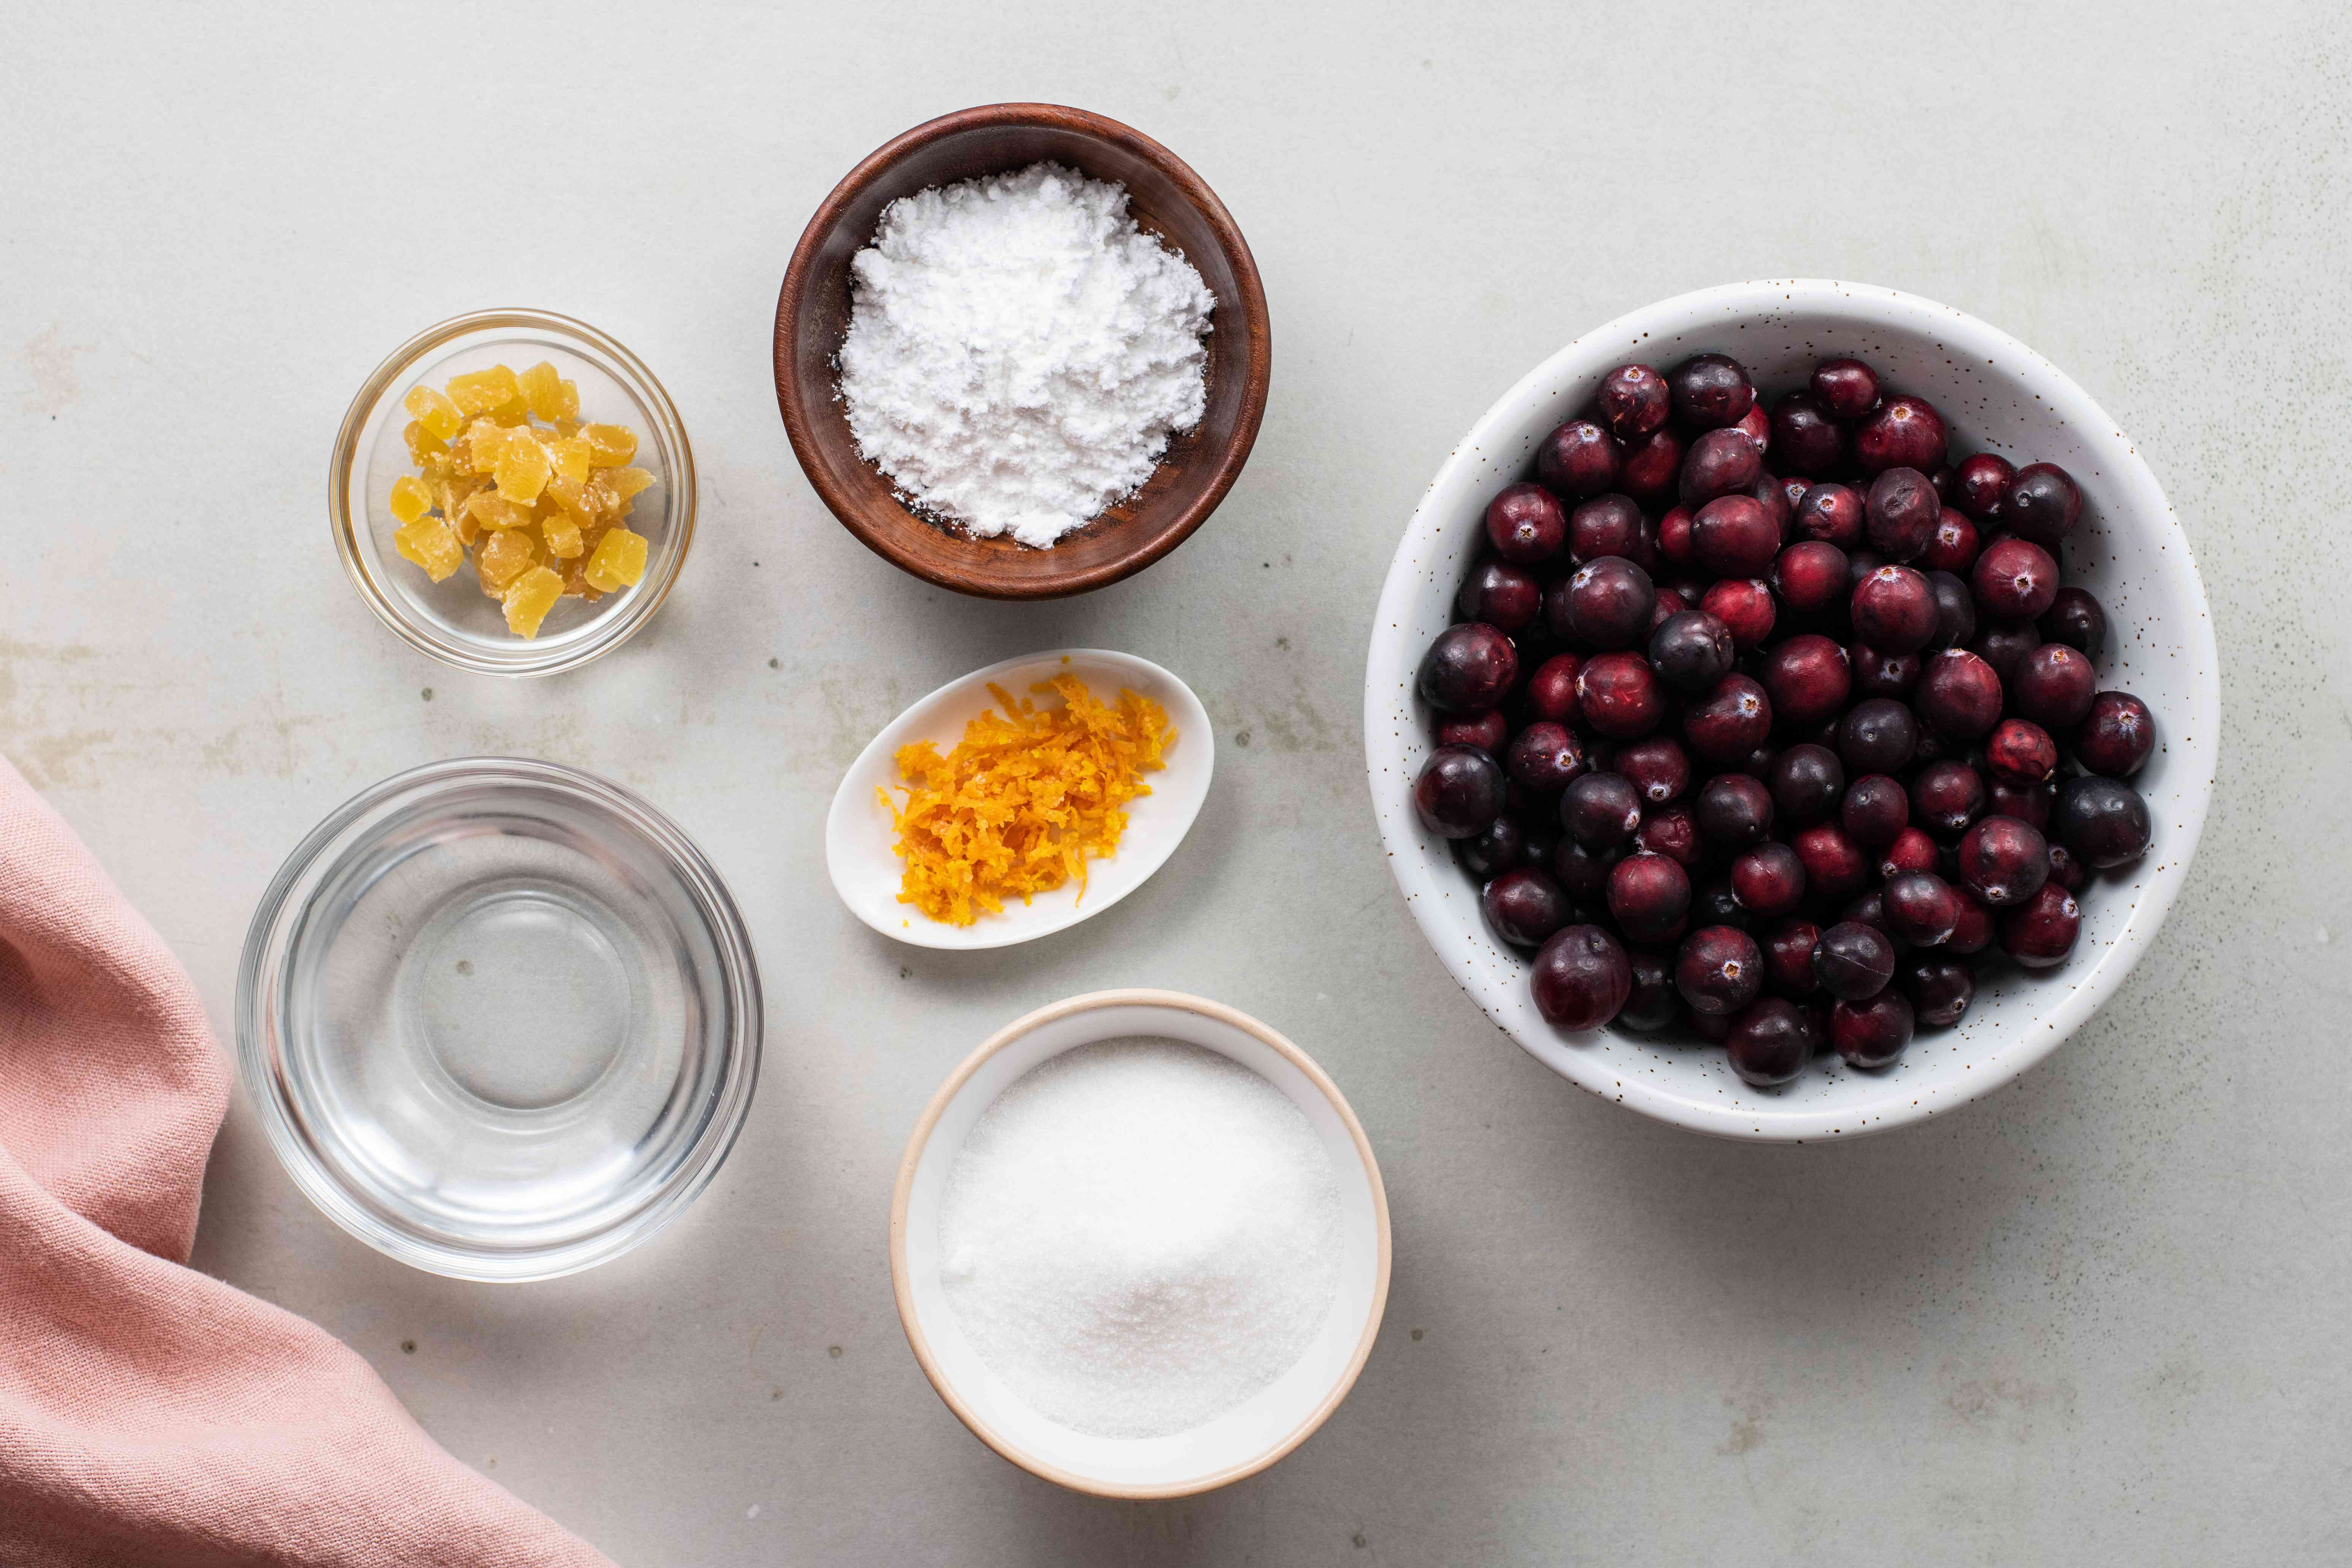 Ingredients for jam